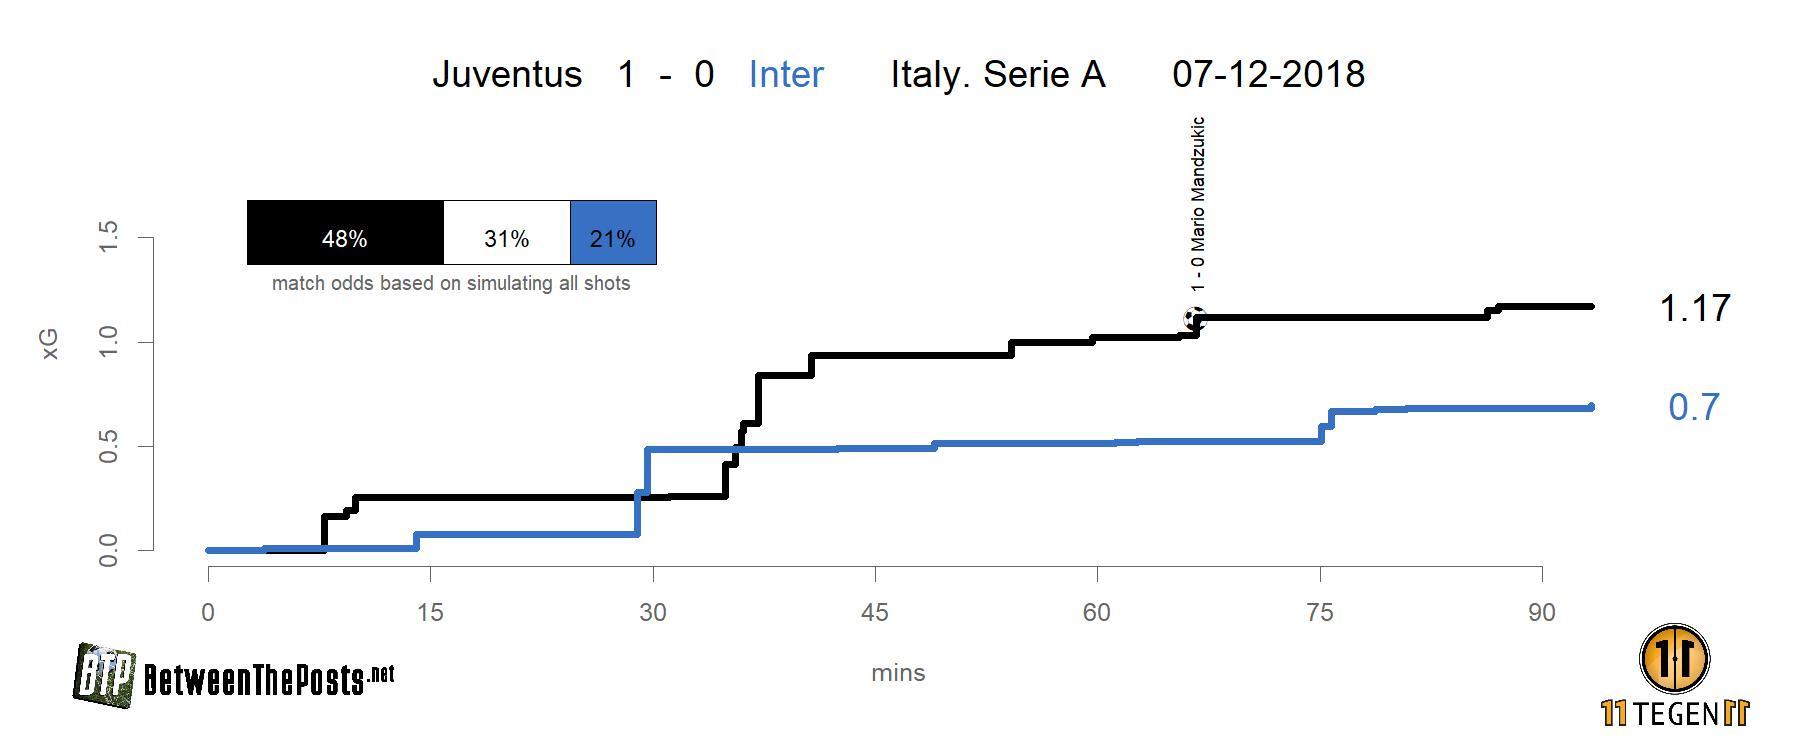 expected goals plot Juventus - Inter 1-0 Serie A